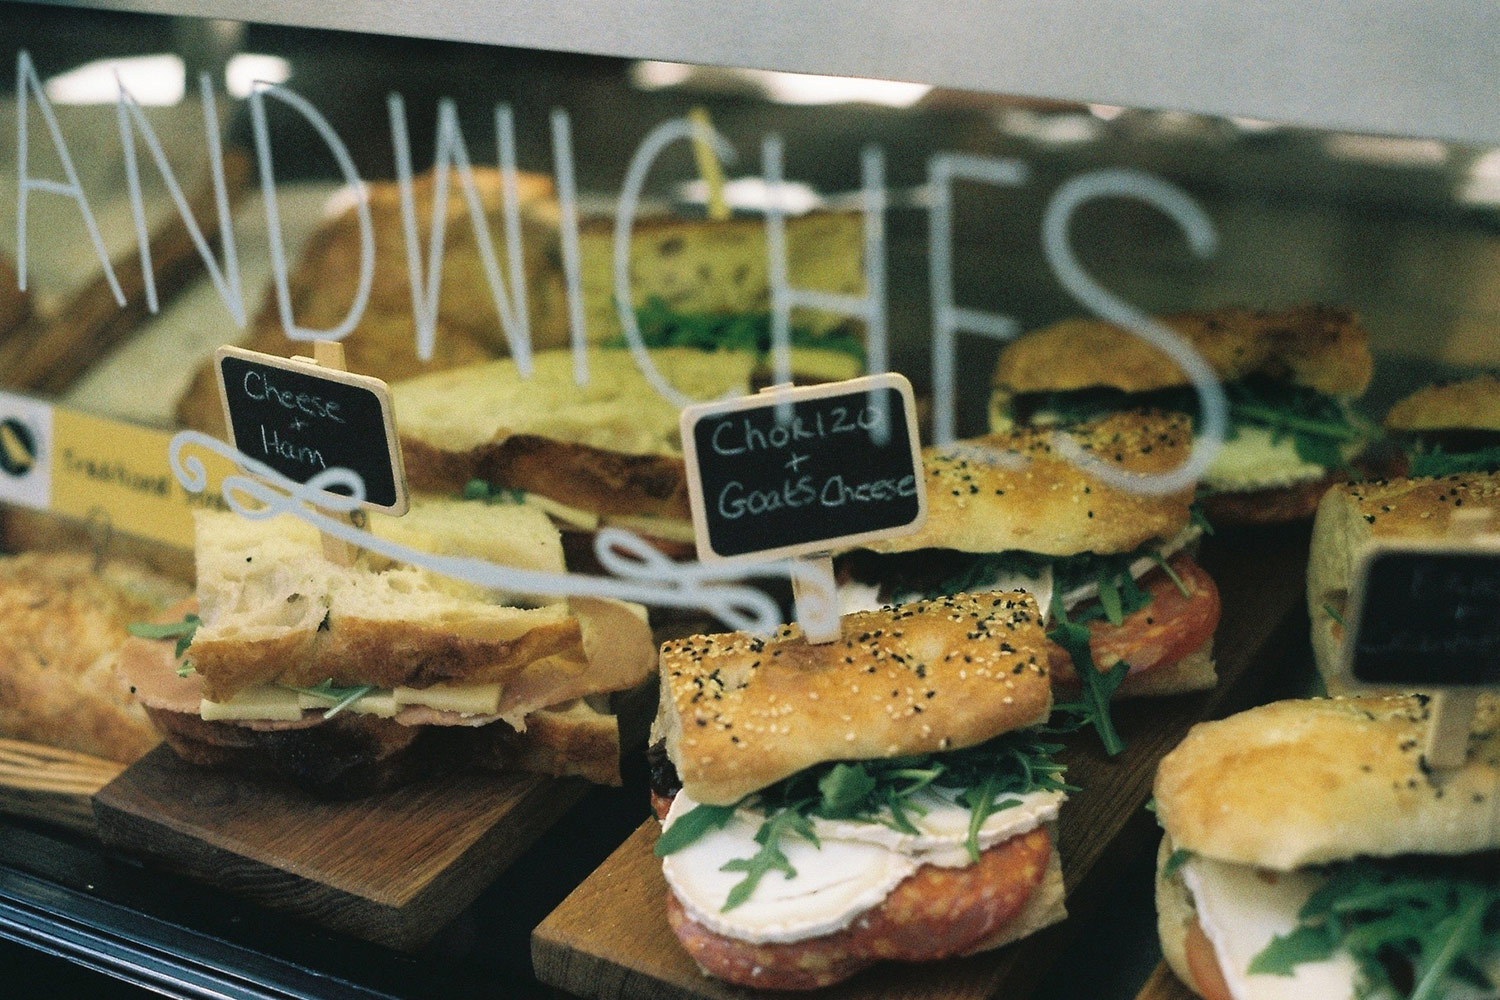 Sandwiches in café windows in St Ives